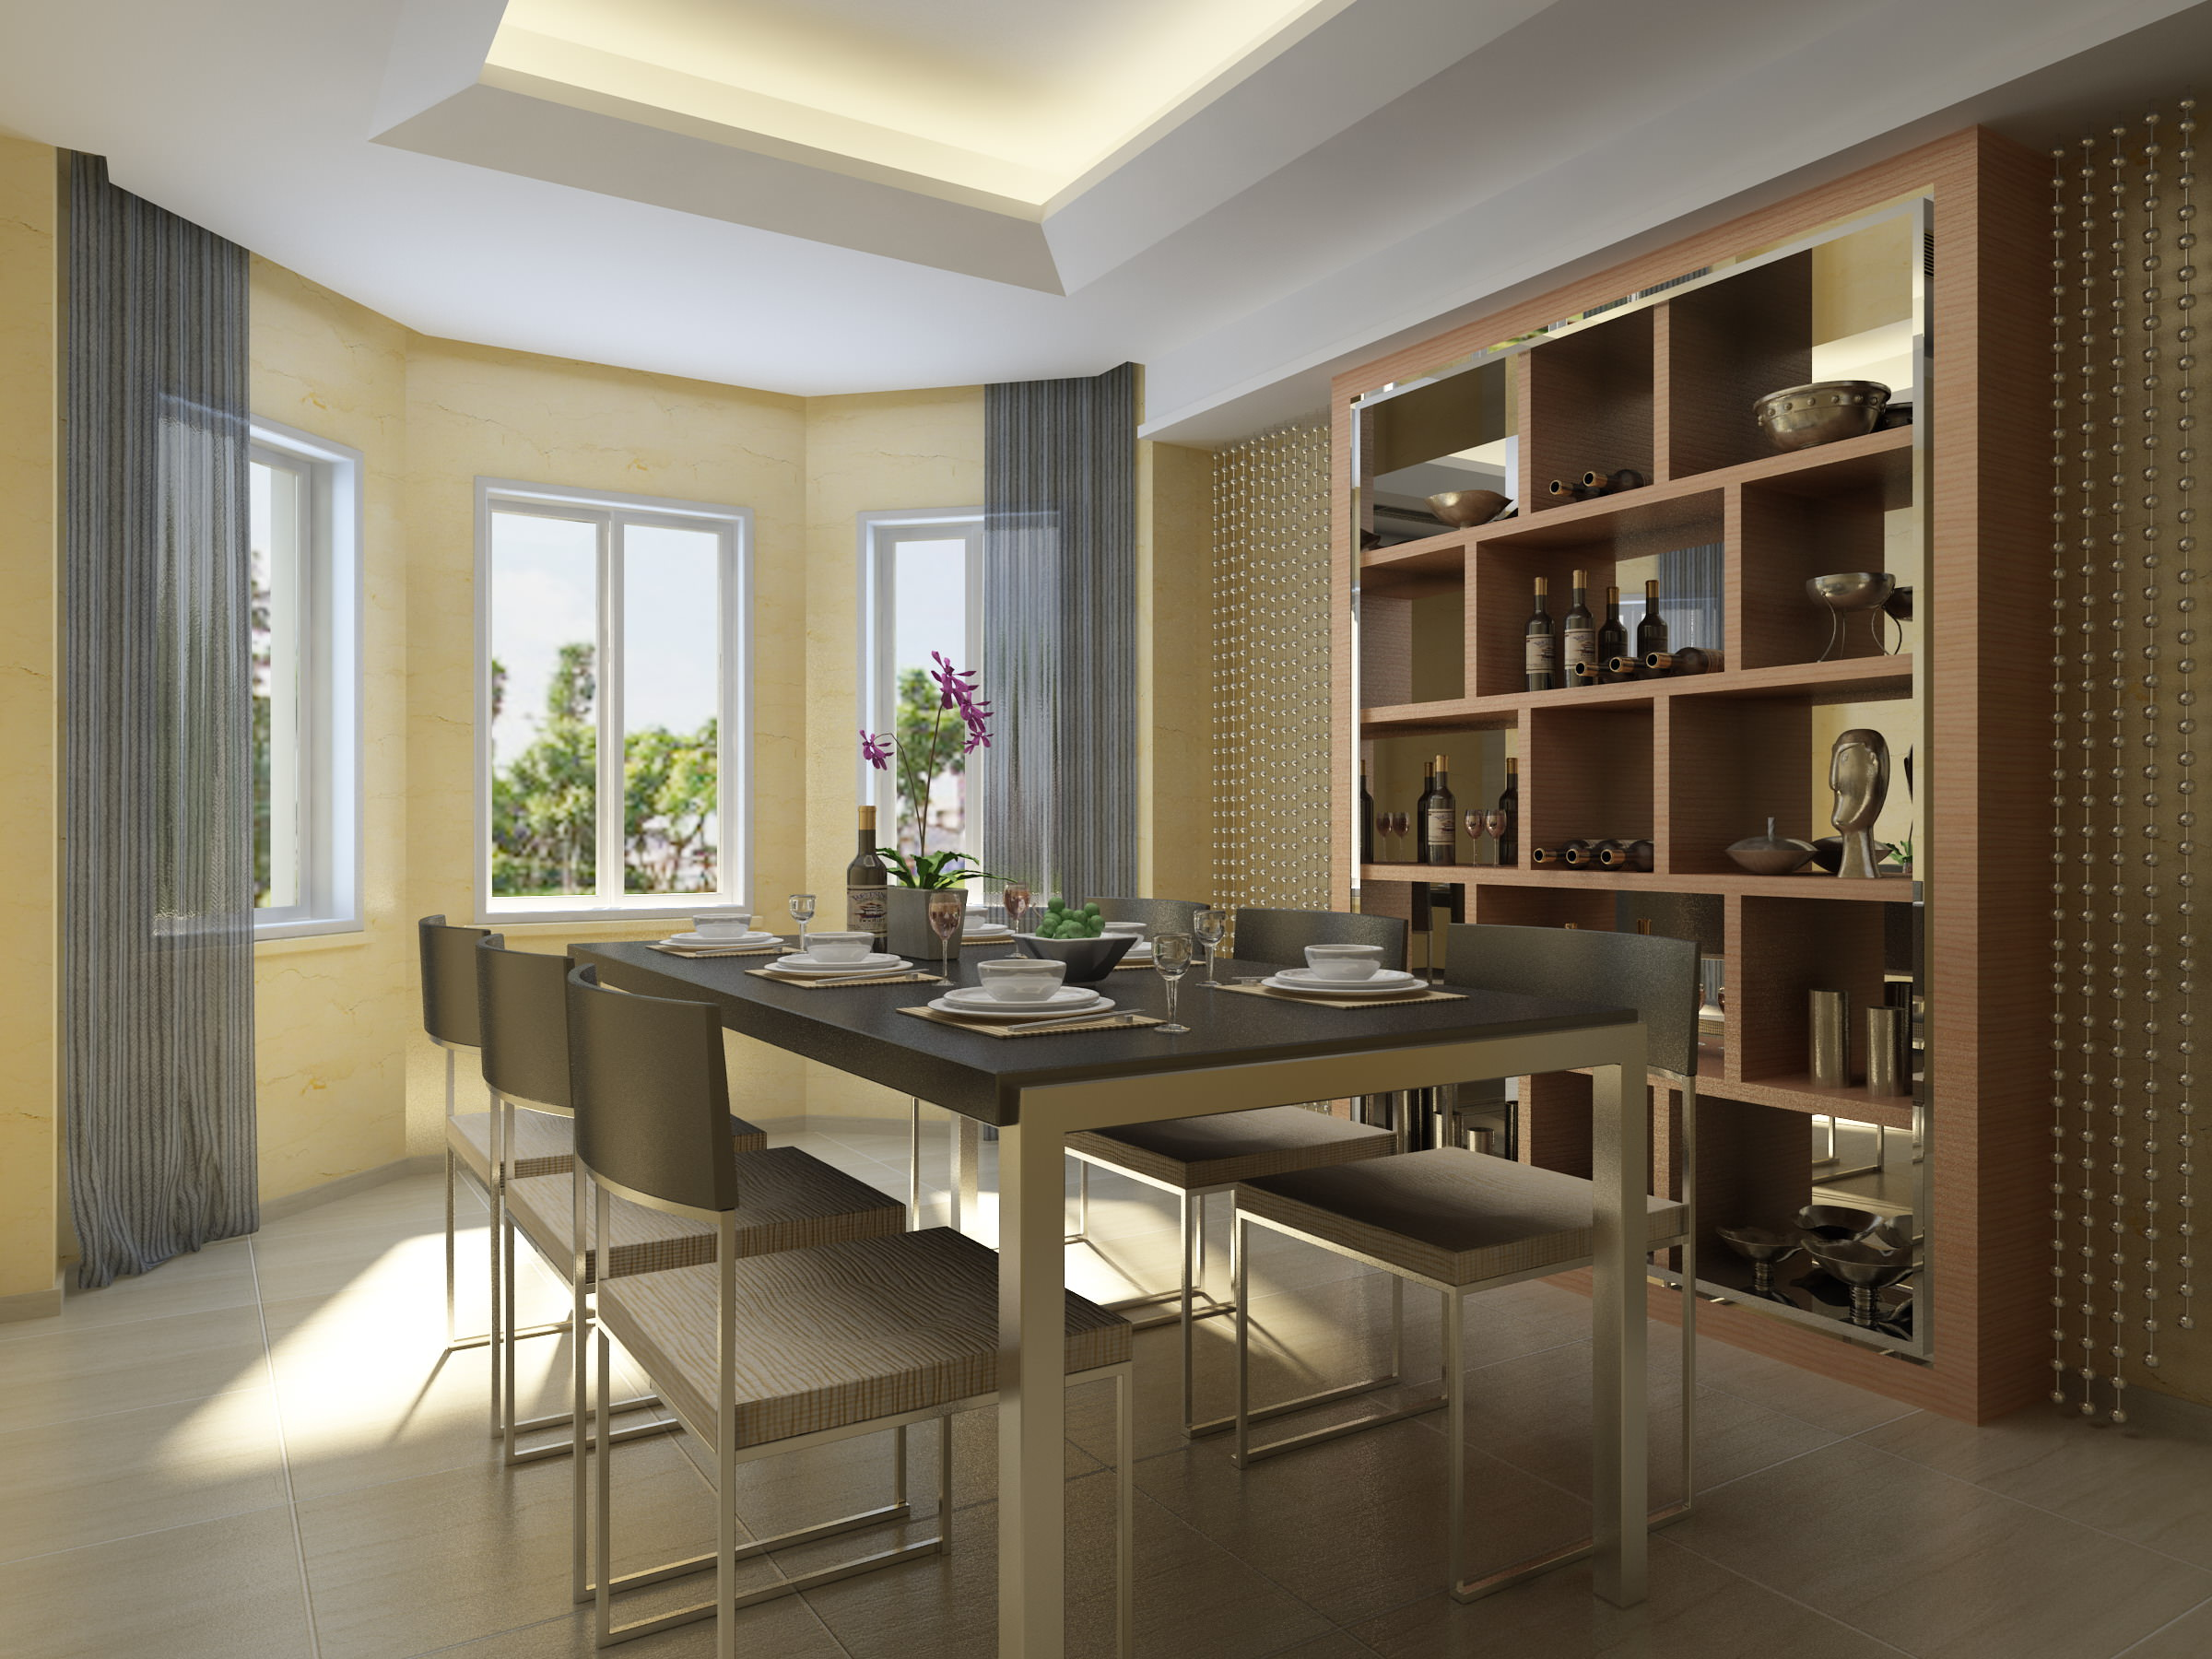 Merveilleux Dining Hall With Wall Showcase 3d Model Max 1 ...